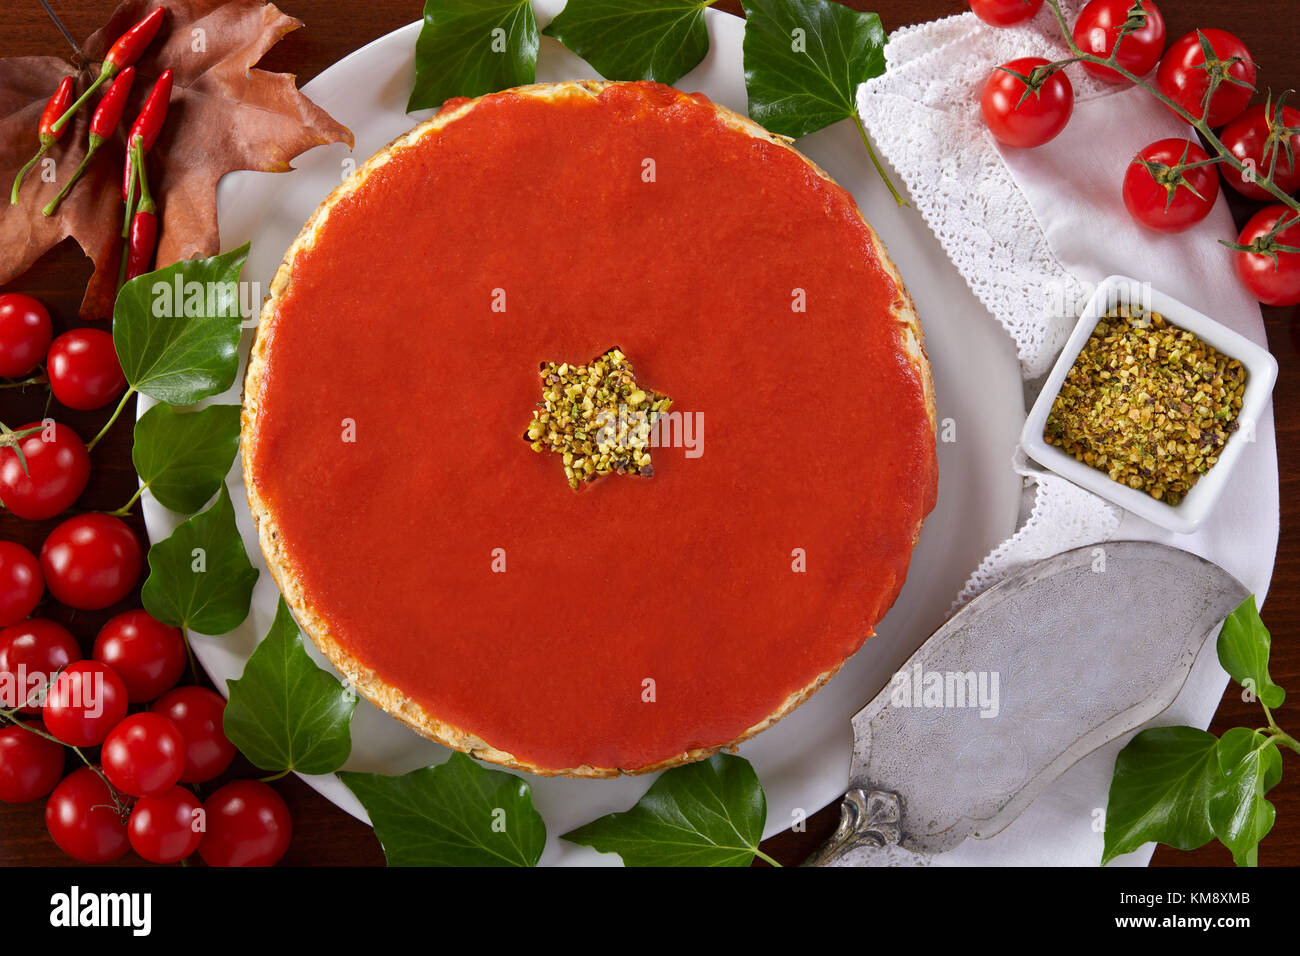 Savory cheesecake for Christmas prepared with cheese, zucchini, pistachios and tomato sauce. - Stock Image